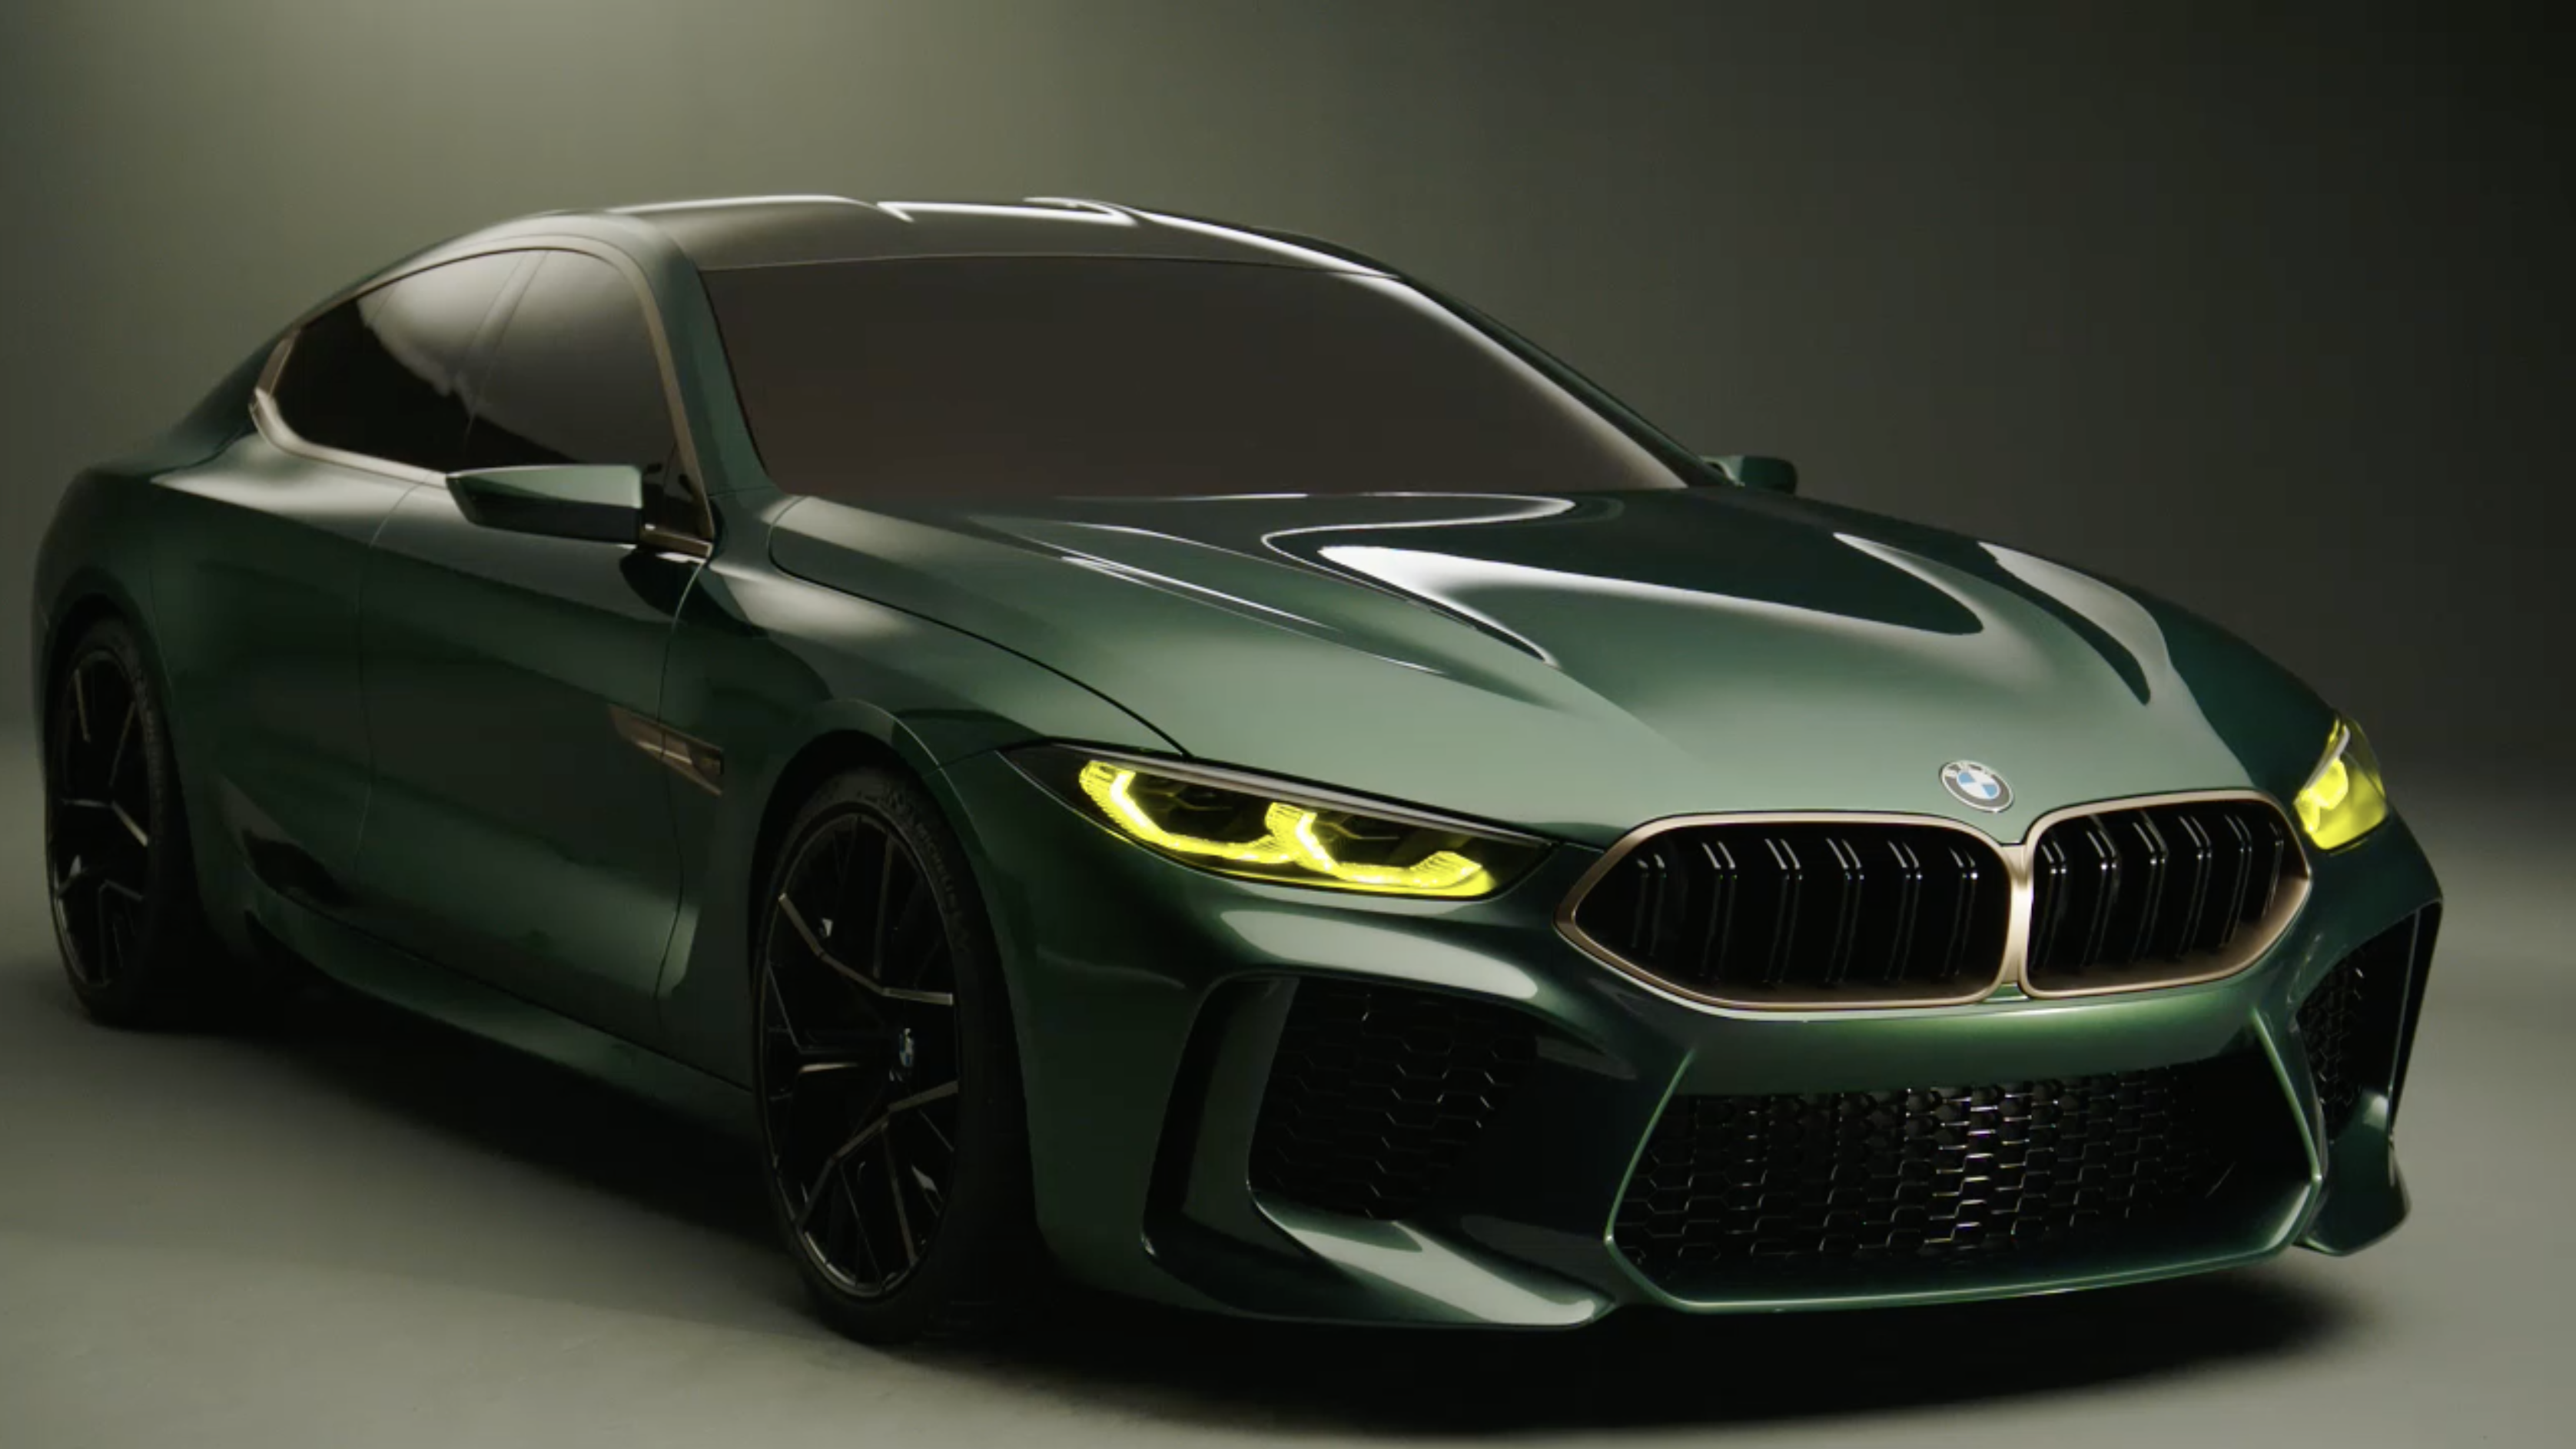 Video The Bmw M8 Gran Coupe Concept Details Bimmerfile